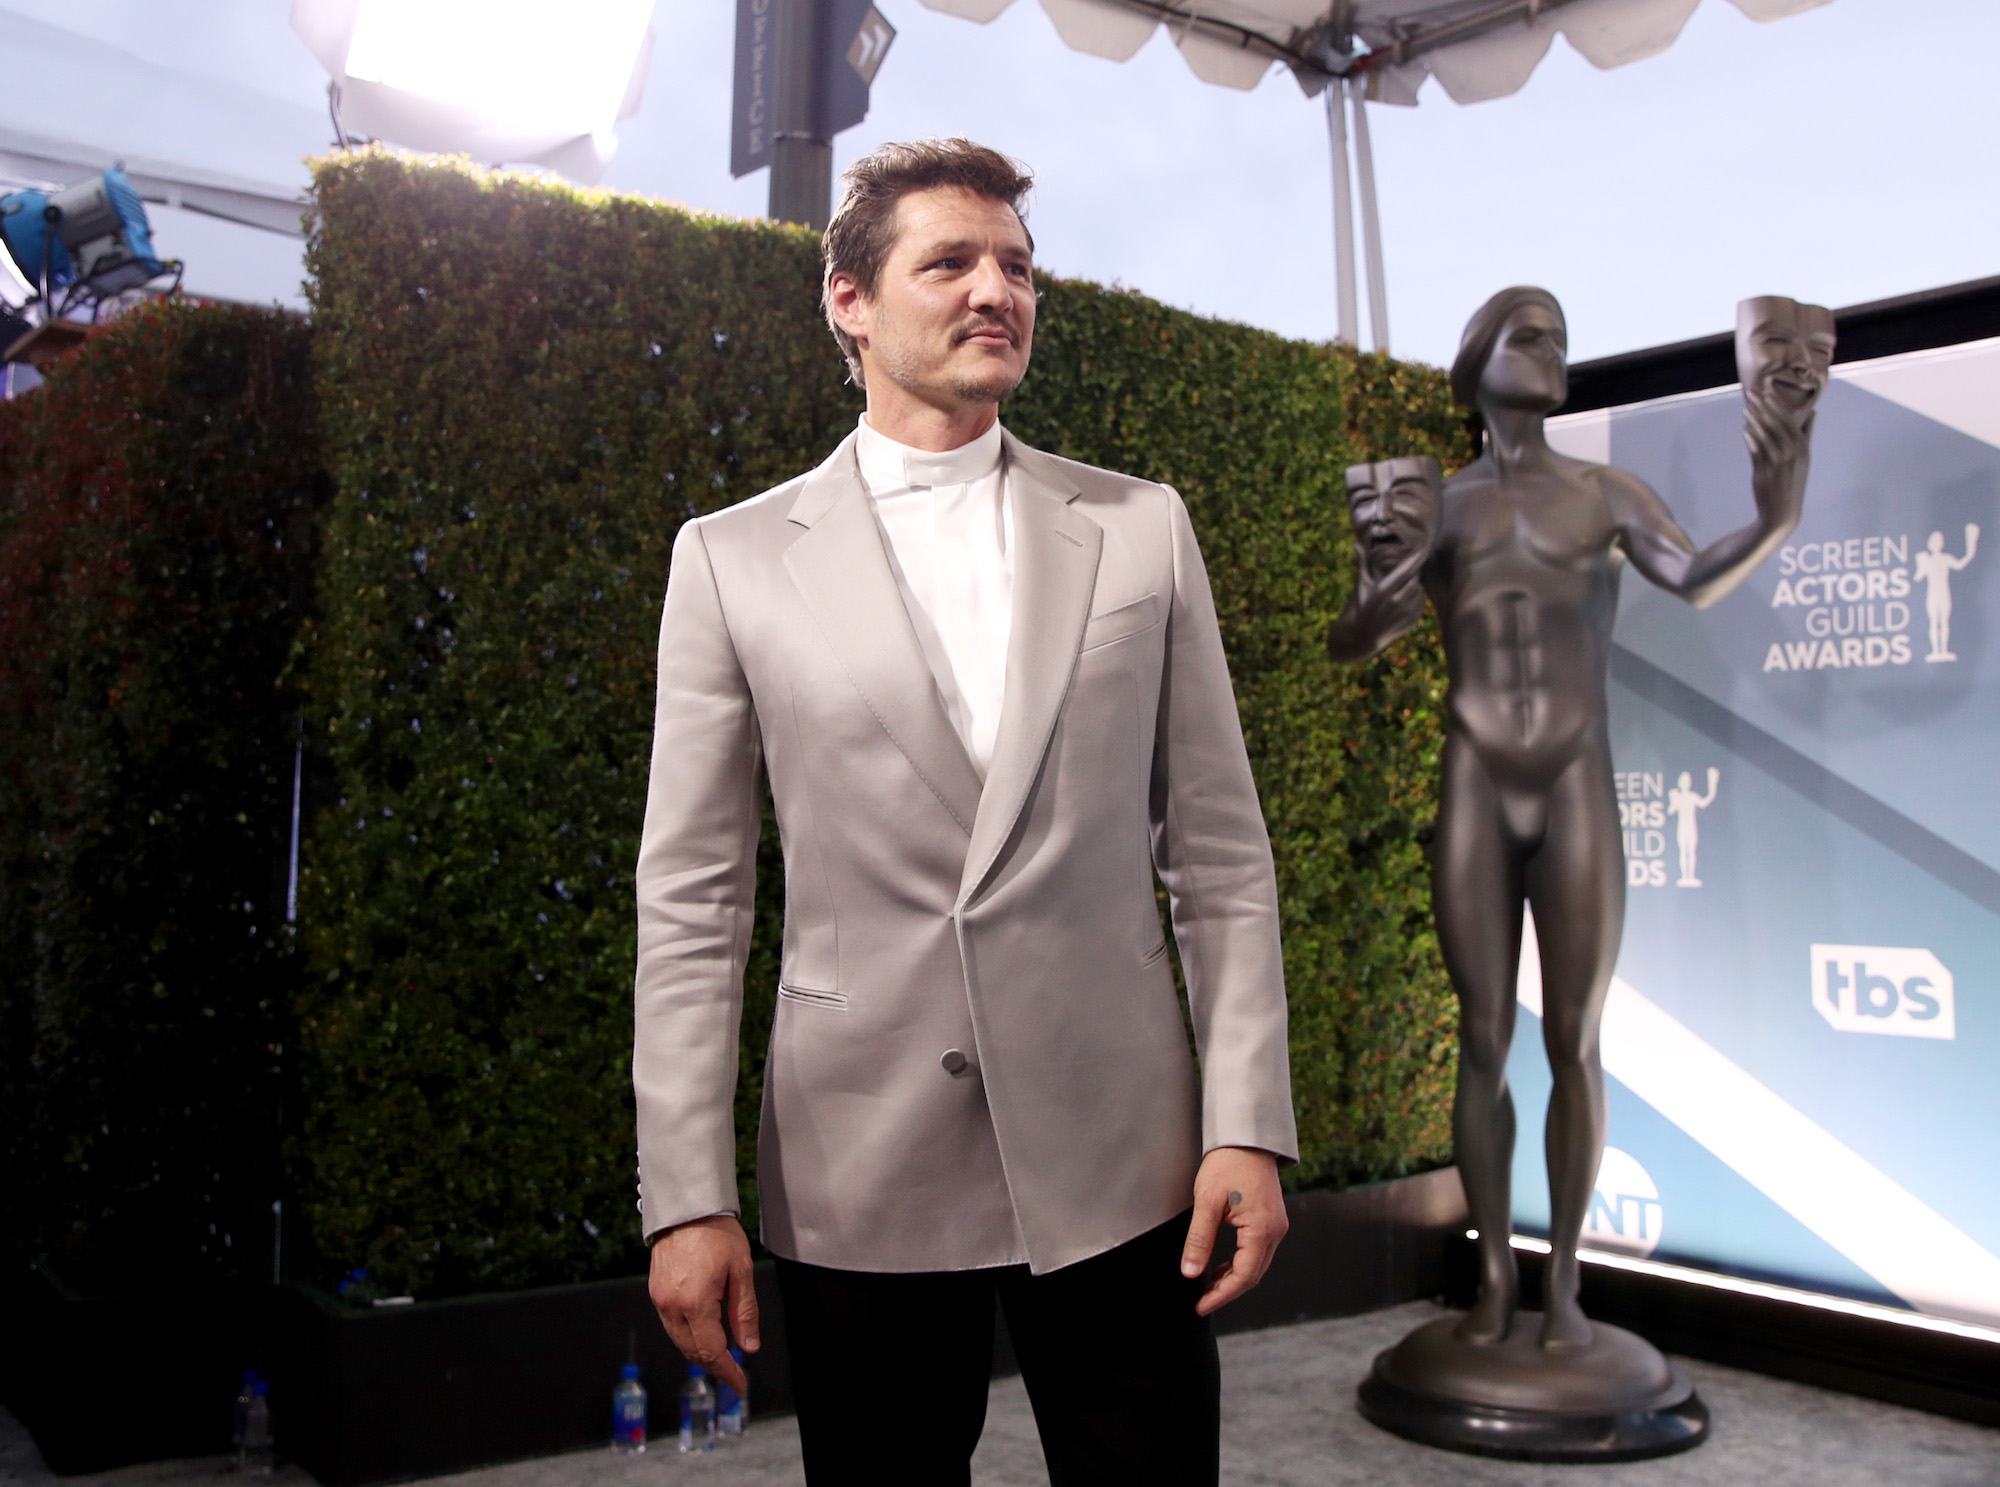 Pedro Pascal at the 26th Annual Screen Actors Guild Awards at The Shrine Auditorium on Jan. 19, 2020 in Los Angeles, California